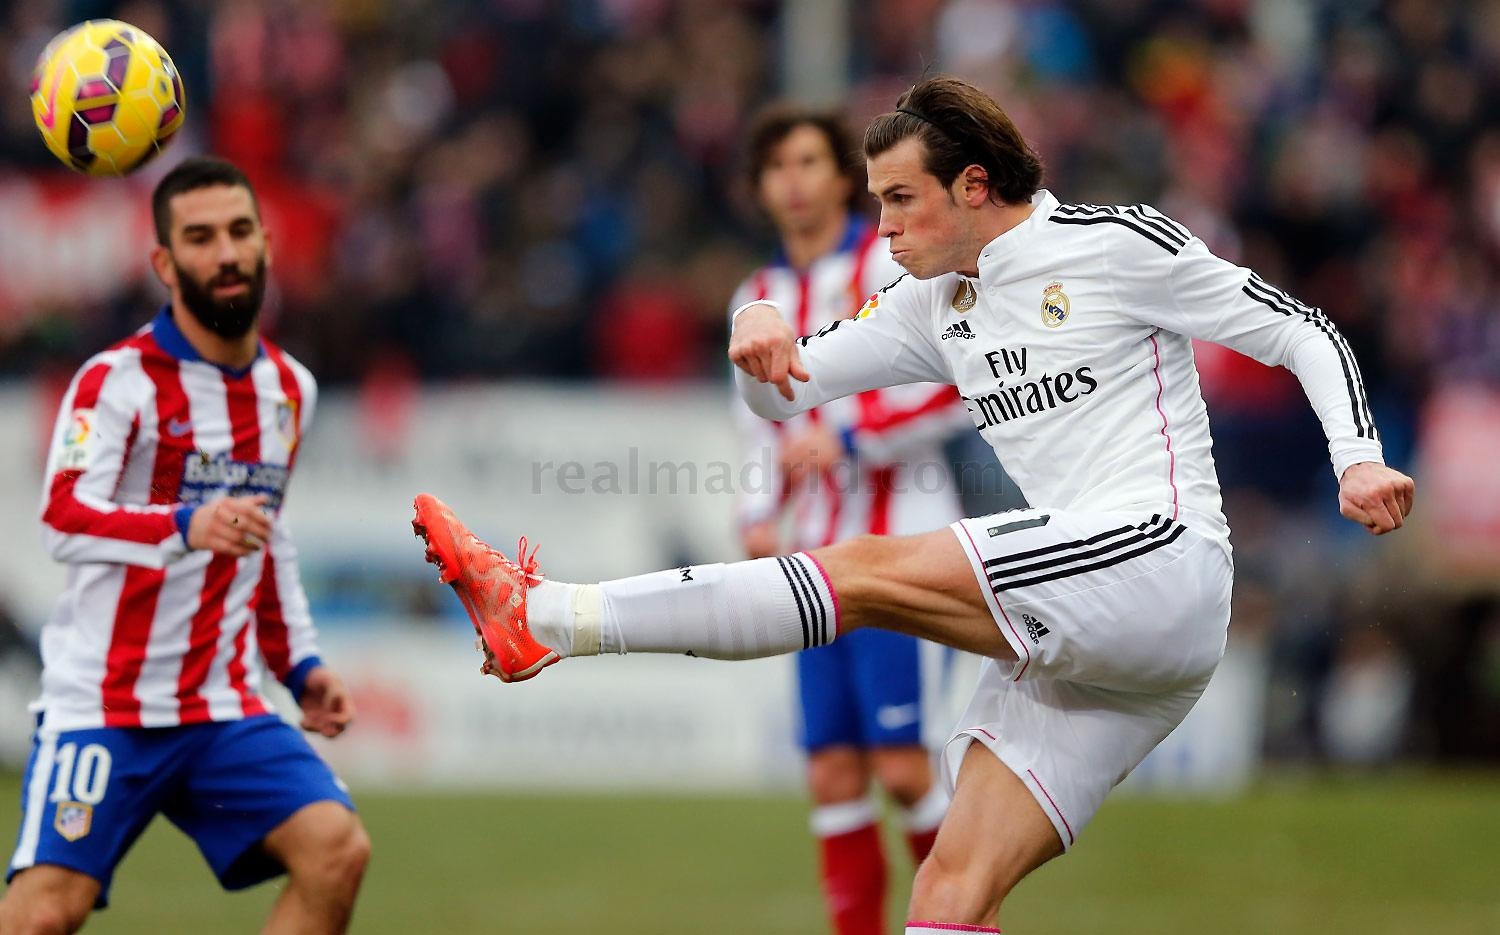 Real Madrid - Atlético de Madrid - Real Madrid - 07-02-2015